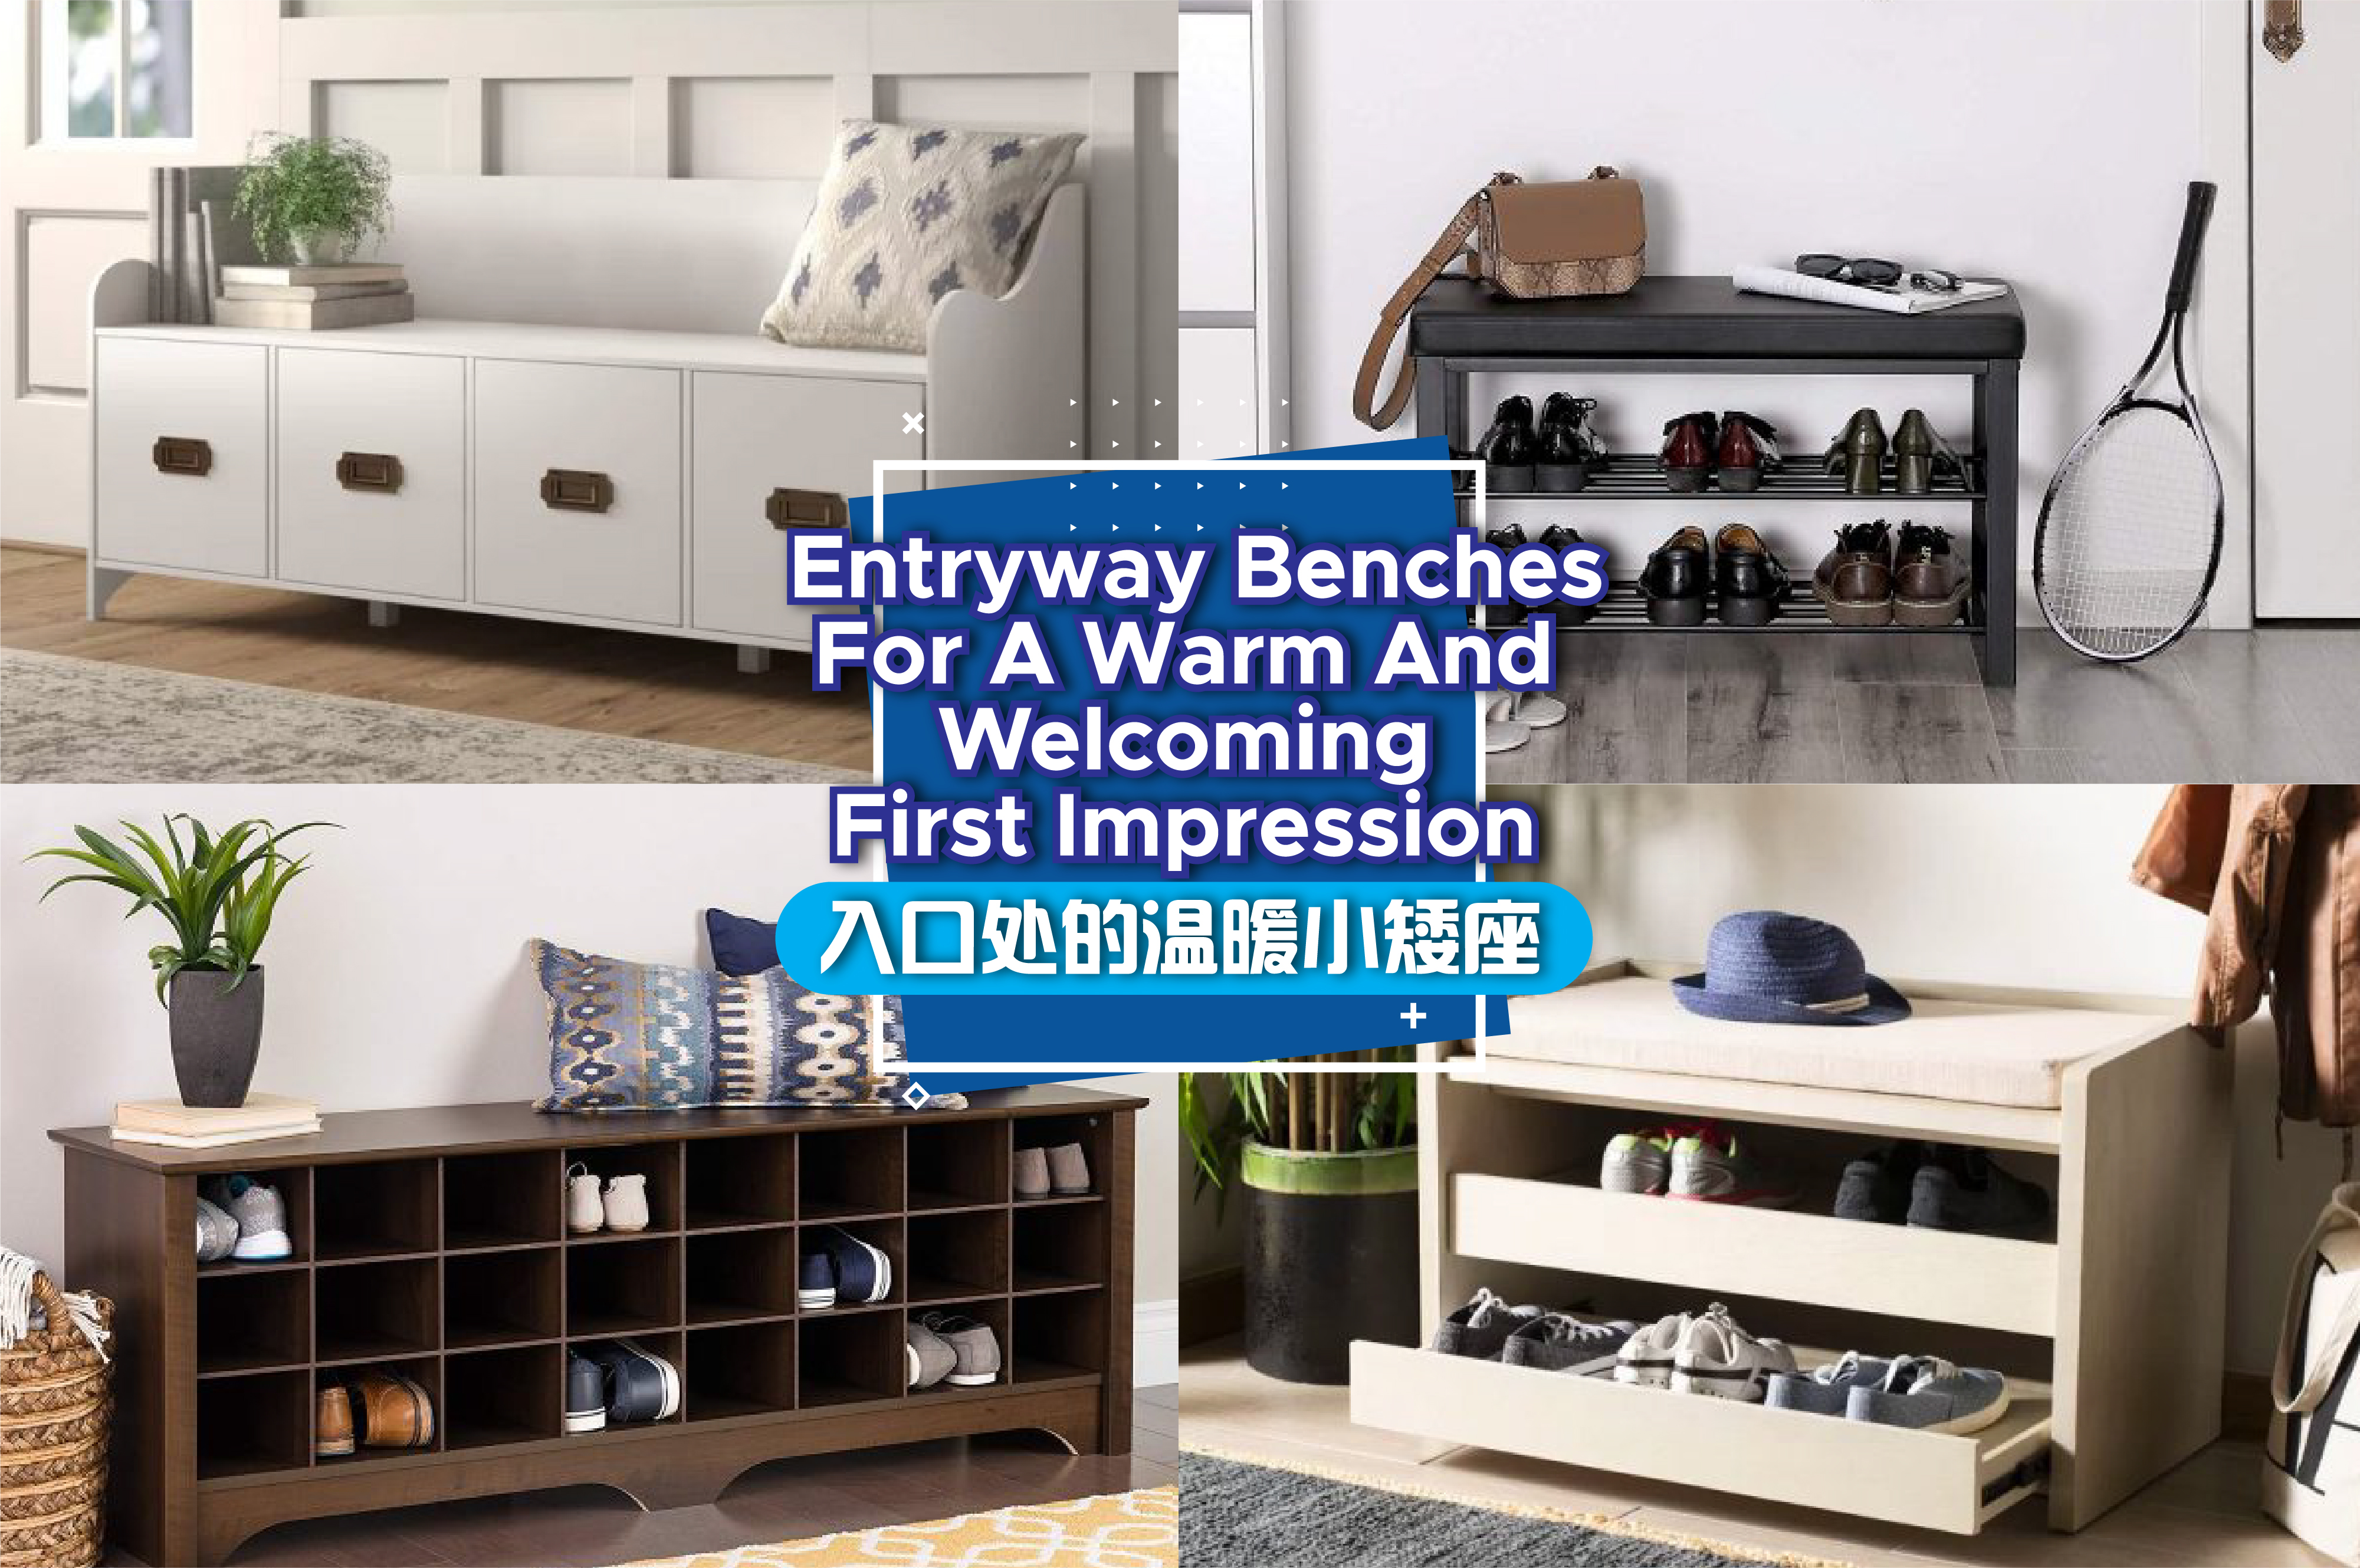 Entryway Benches For A Warm And Welcoming First Impression 入口处的温暖小矮座